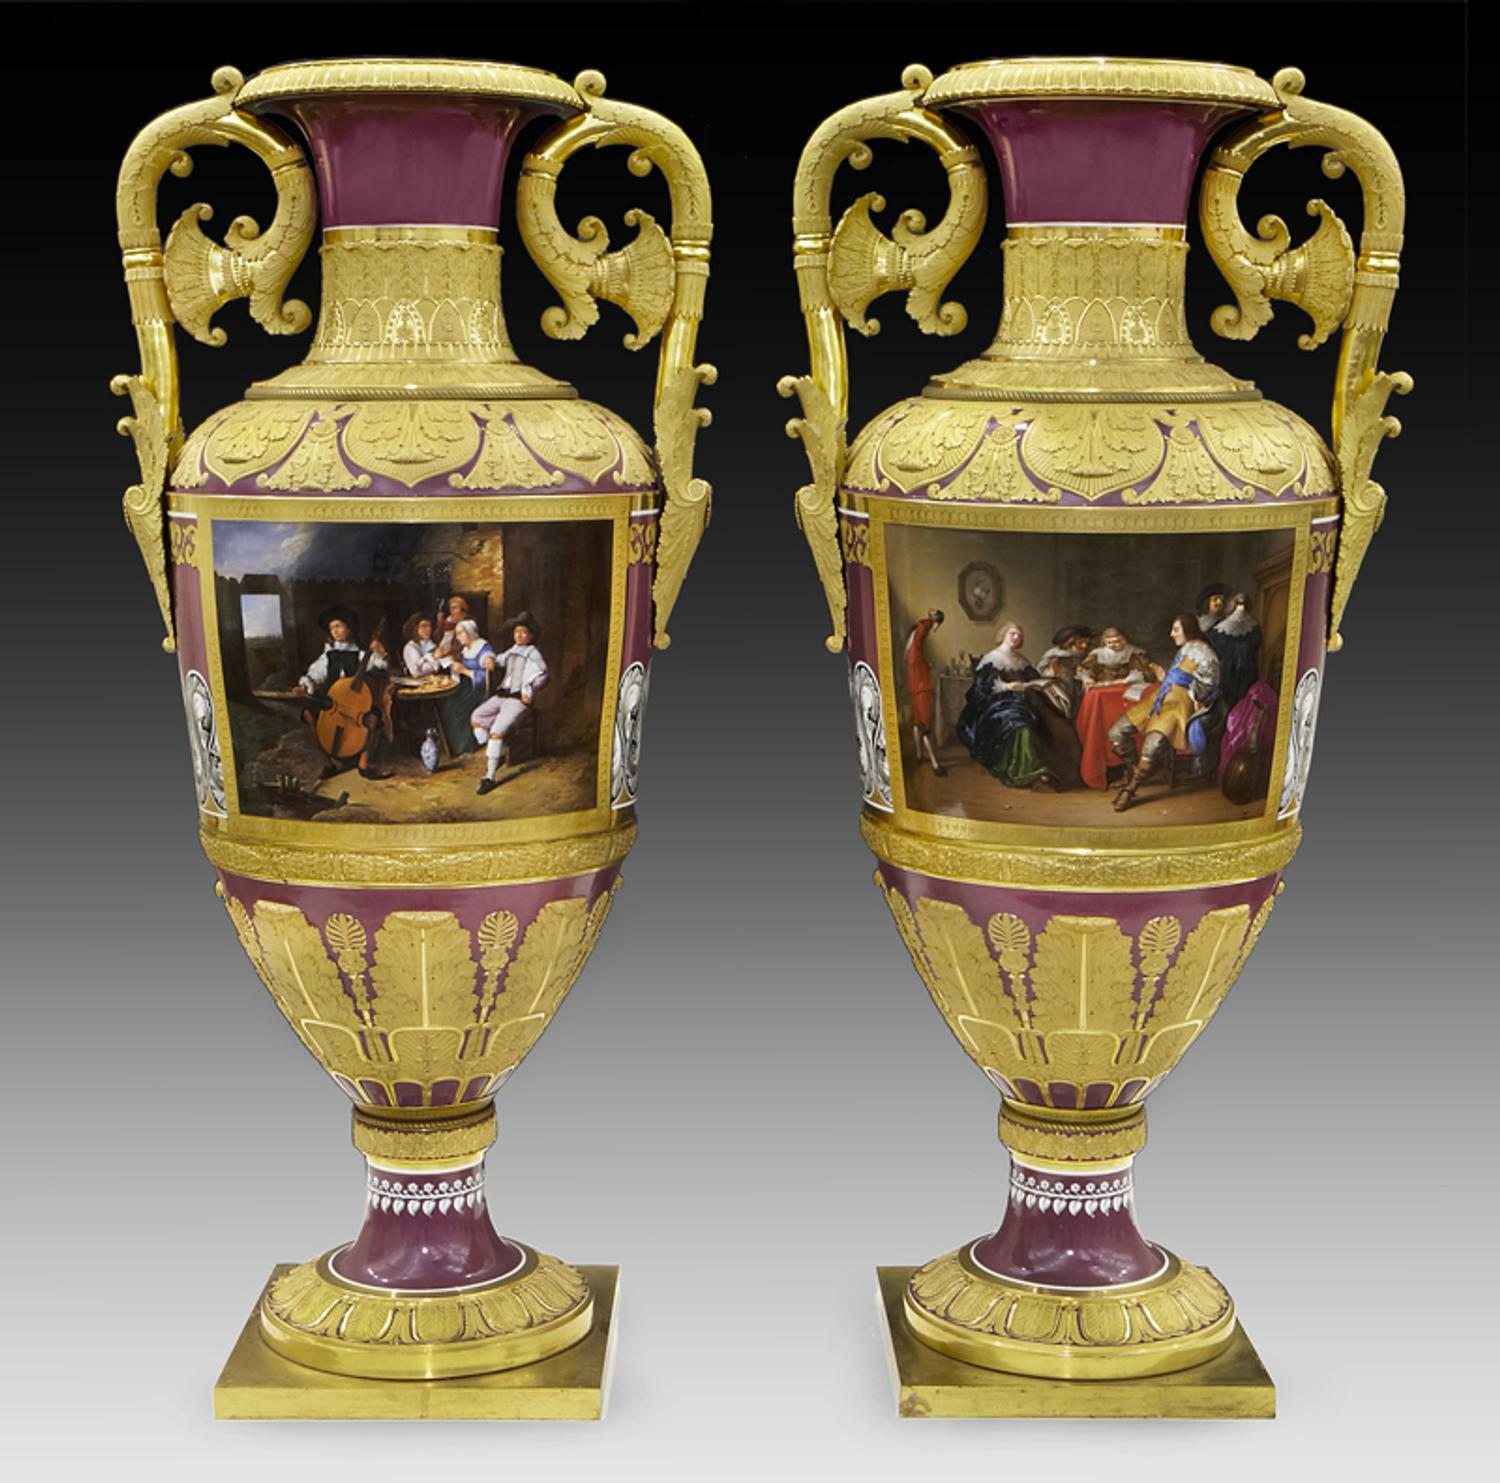 Dallas Auction Gallery To Sell Imperial Porcelain Vases